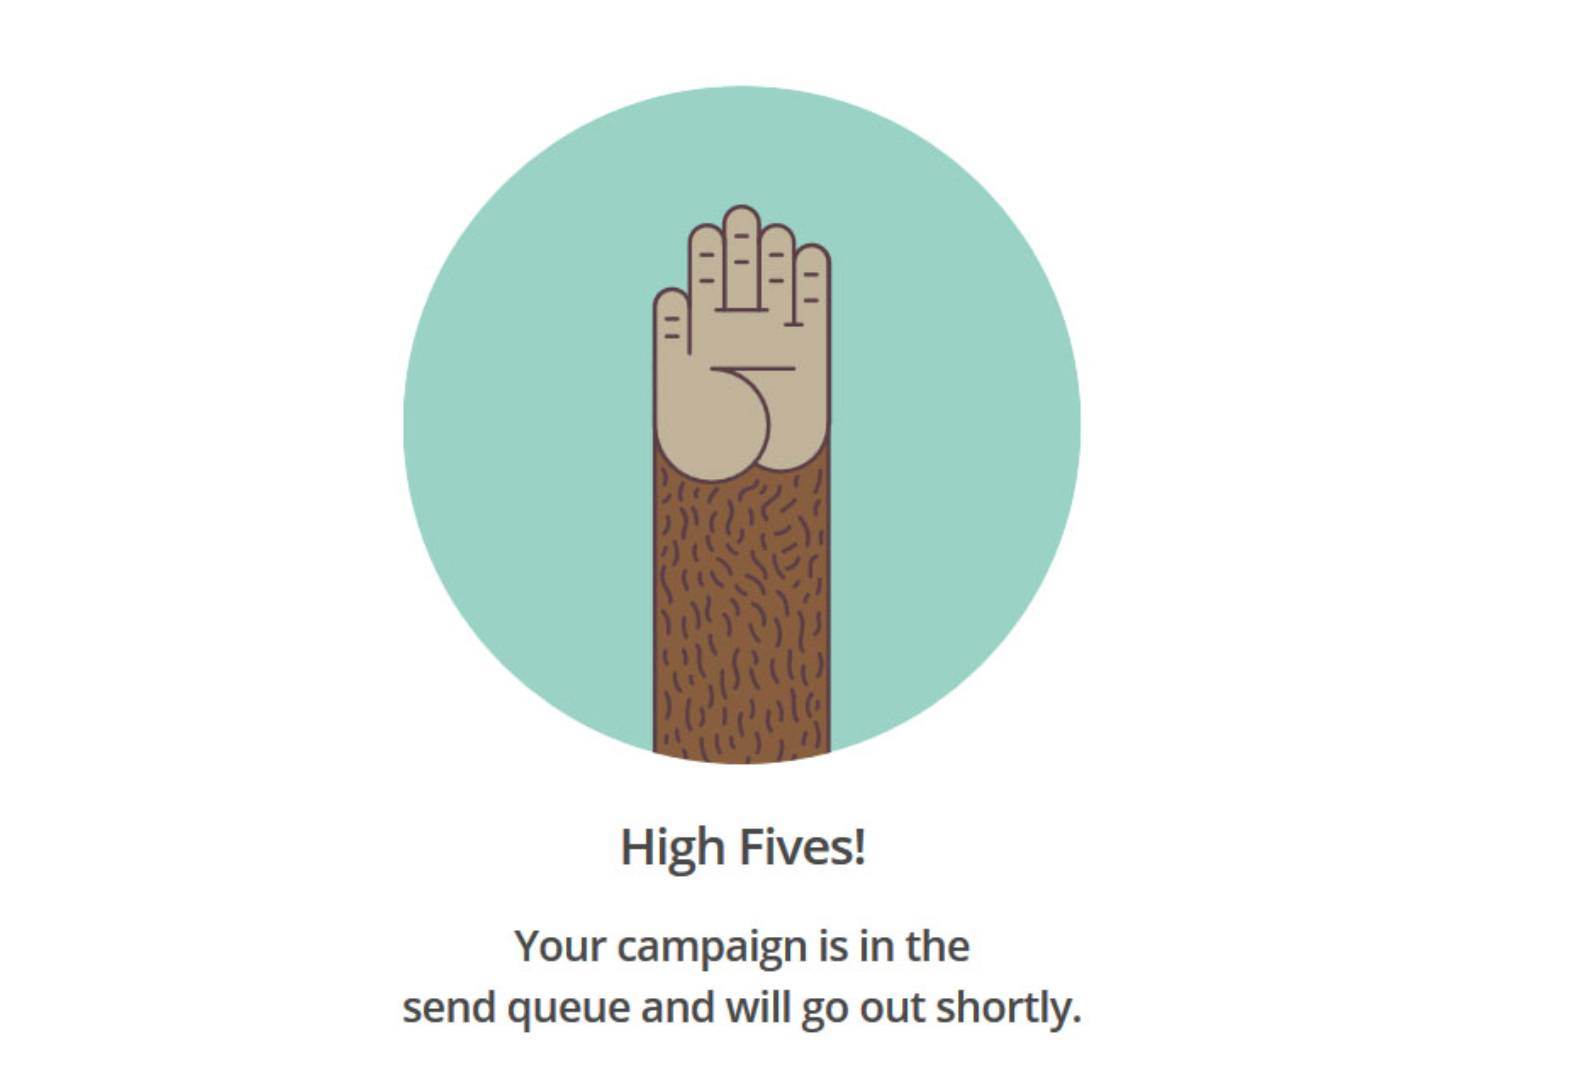 MailChimp's success message takes into account the user's emotional state after sending/queuing up a newsletter.